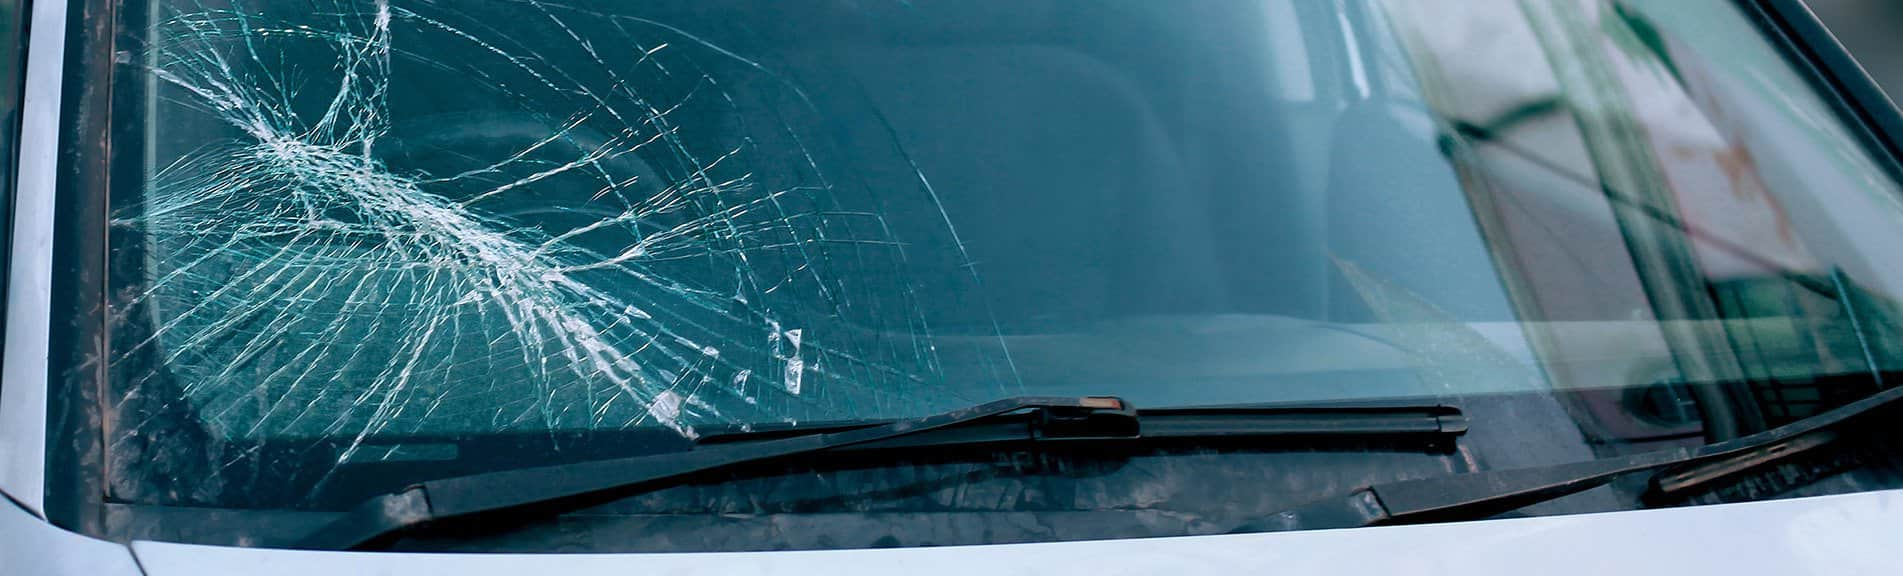 Windshield Replacement Services in Florida